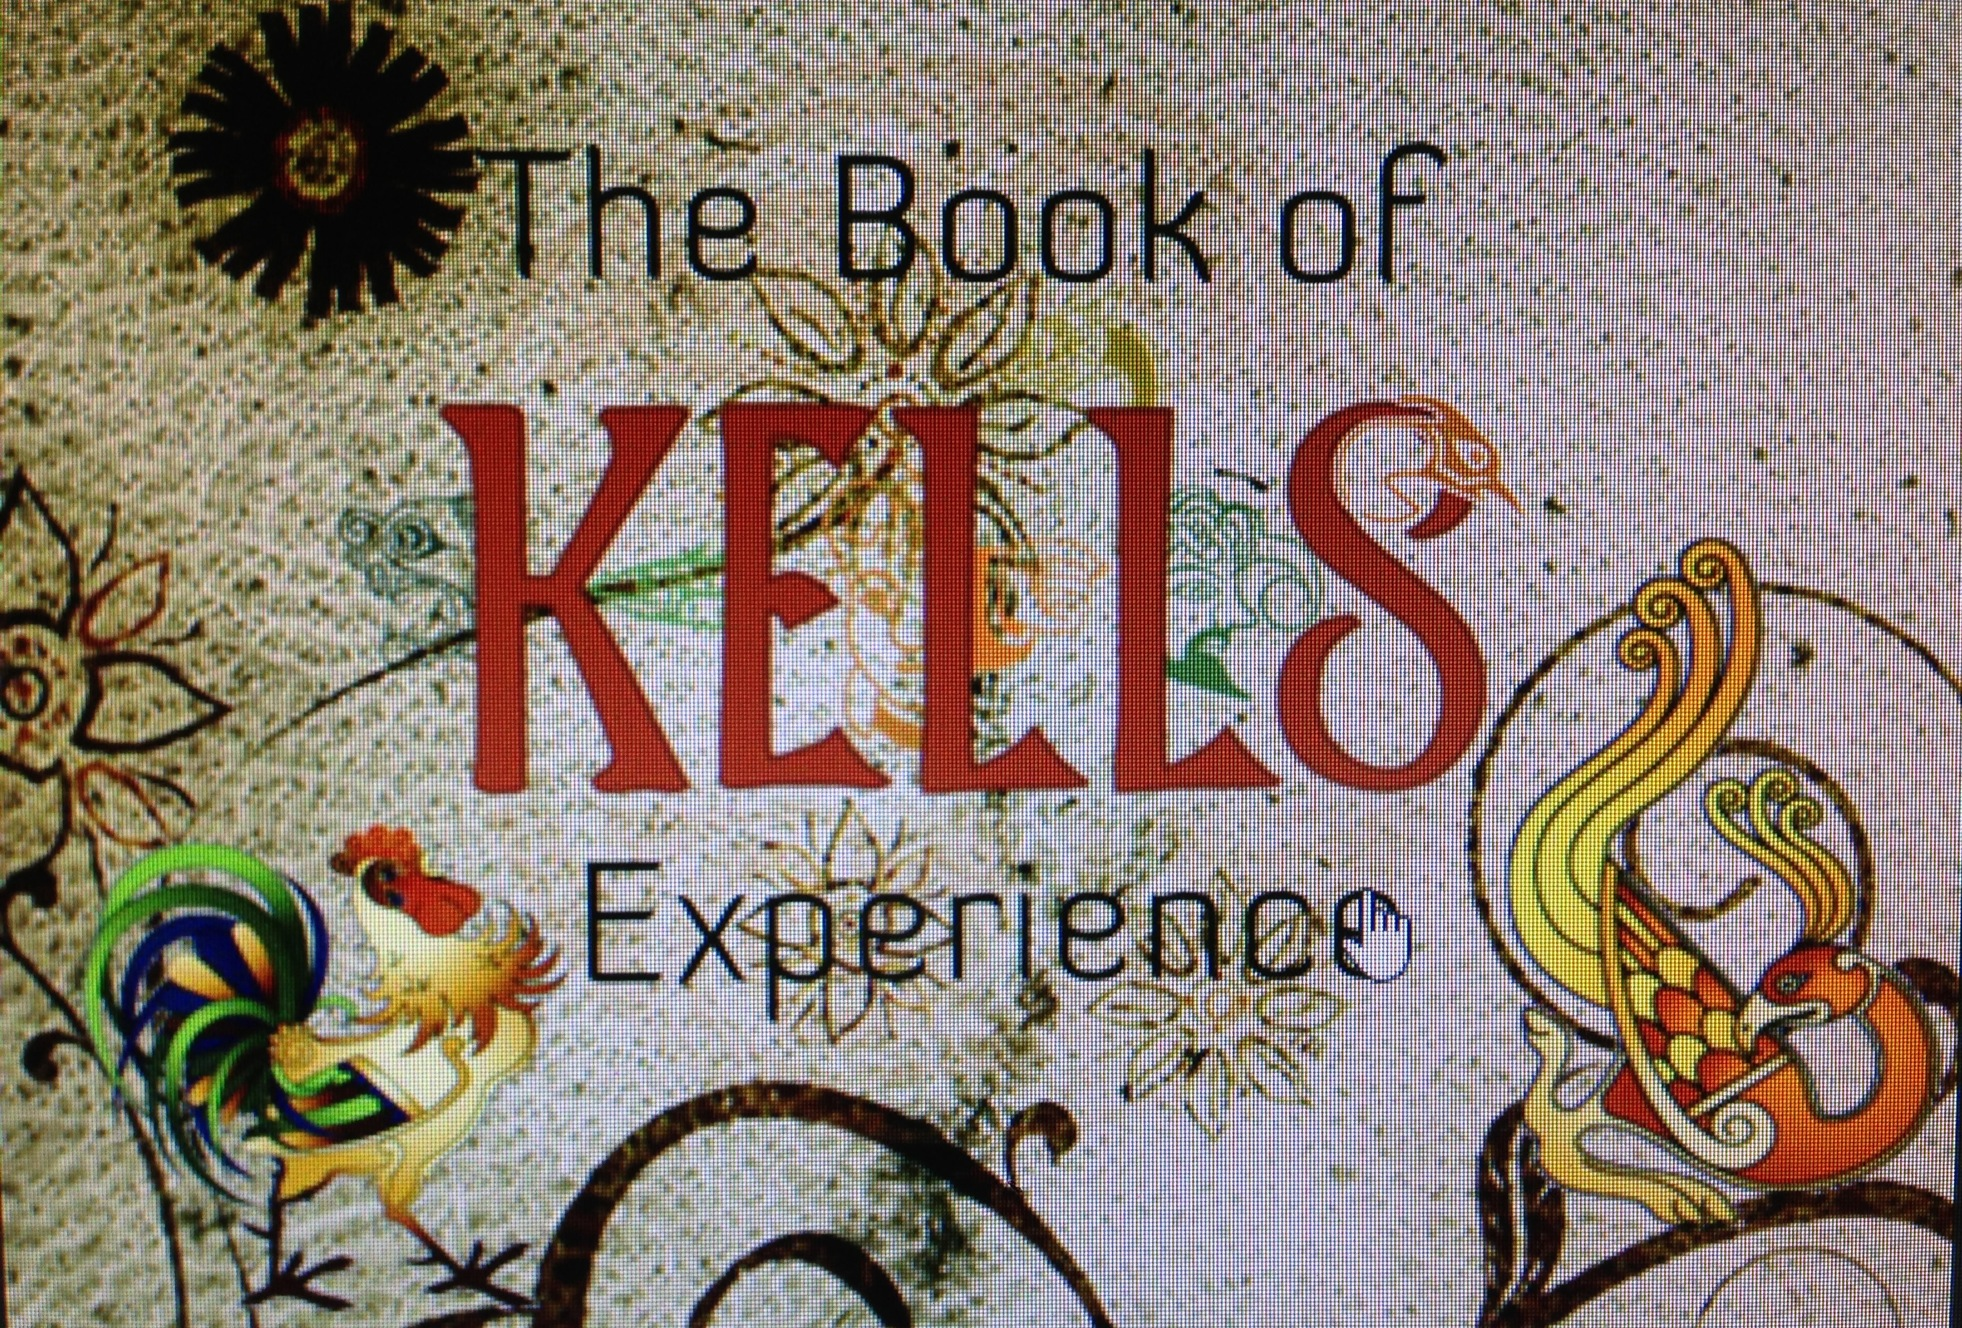 The book of kells experience